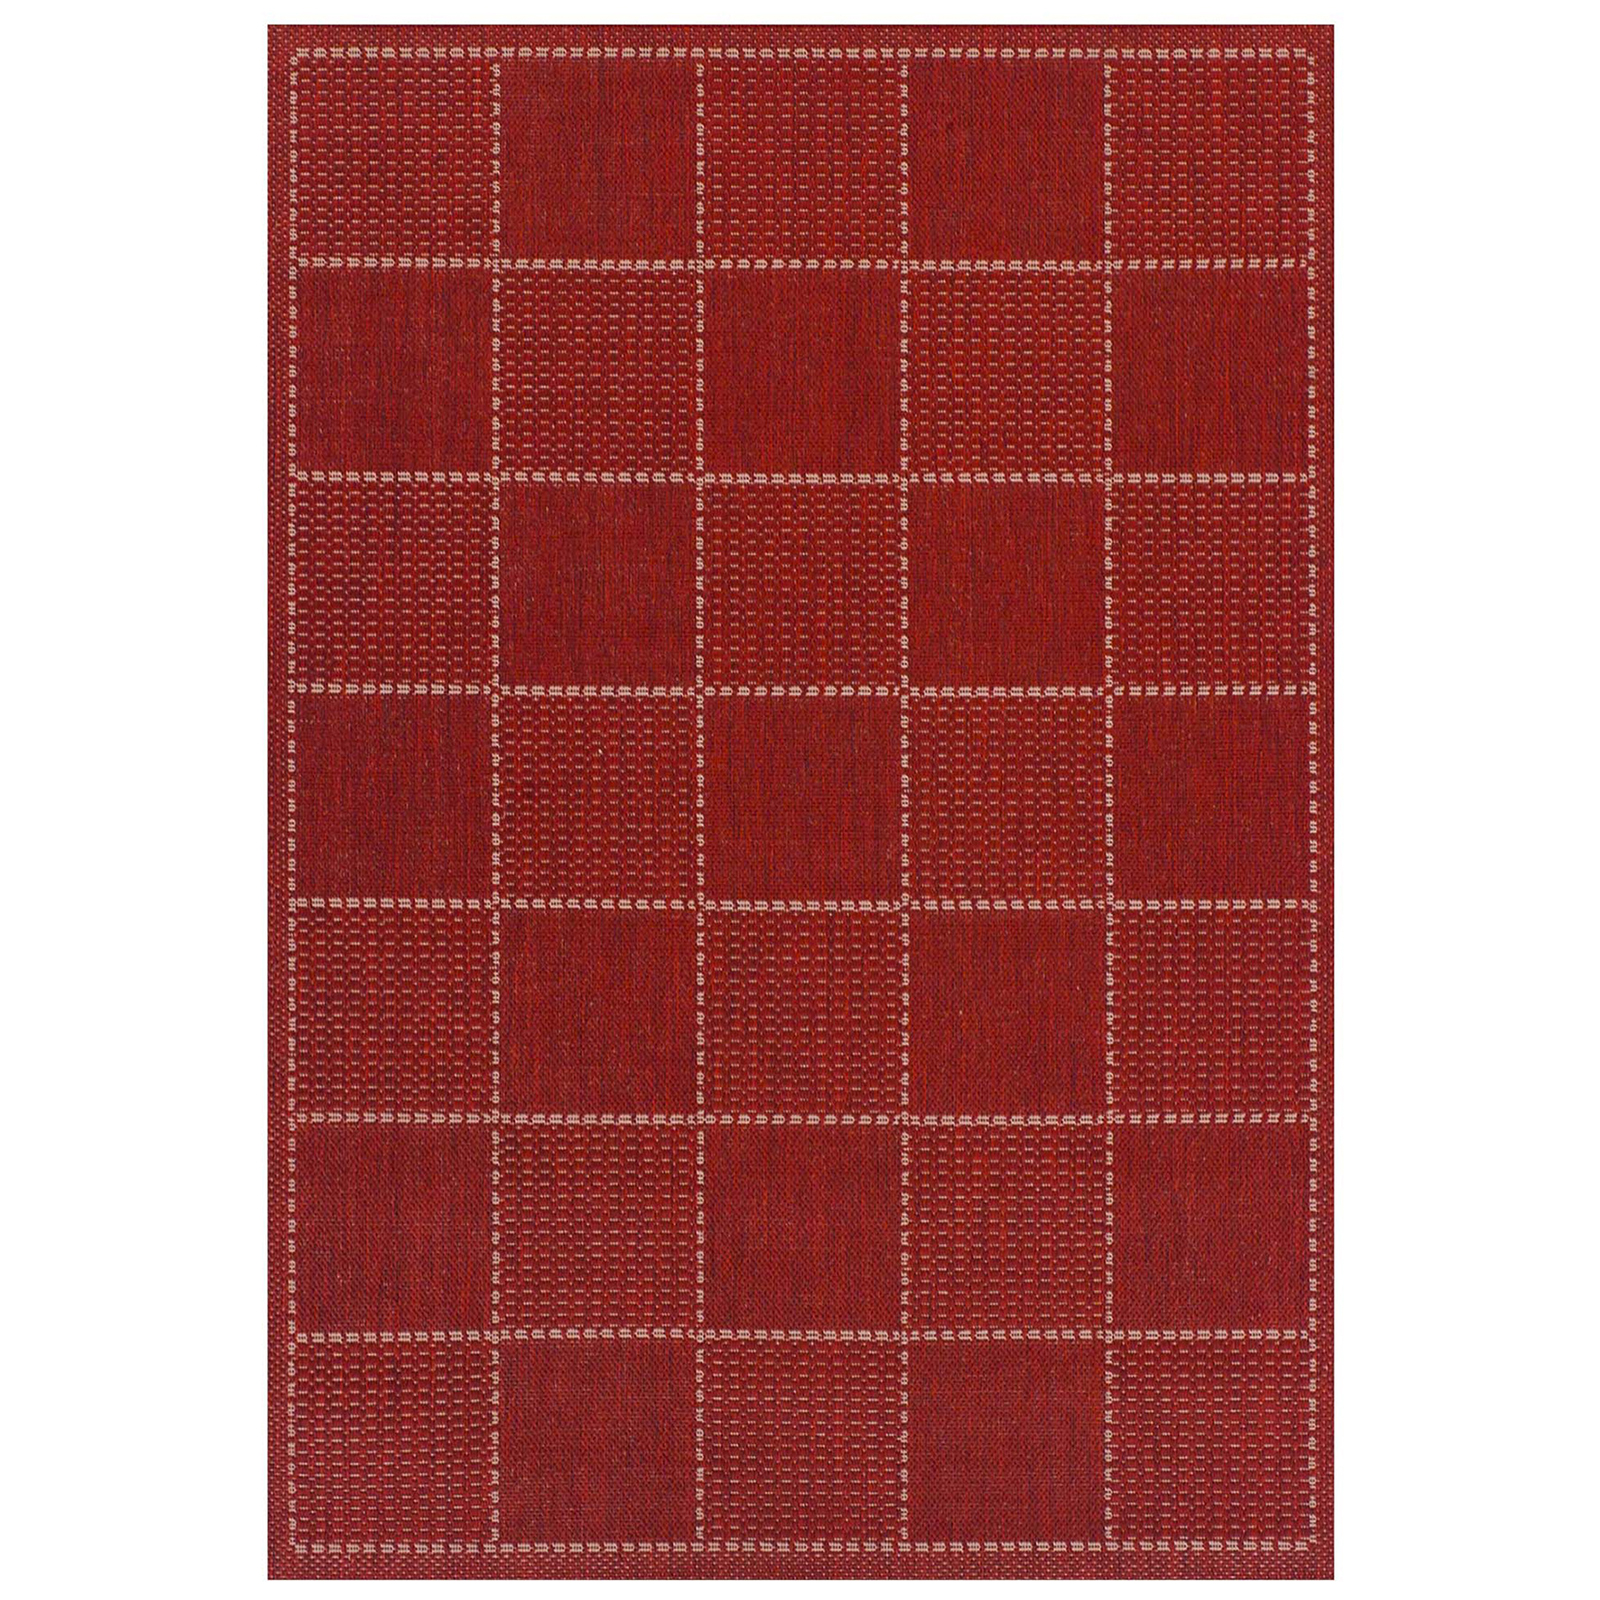 Checked-Flatweave-Red-Overhead.jpg